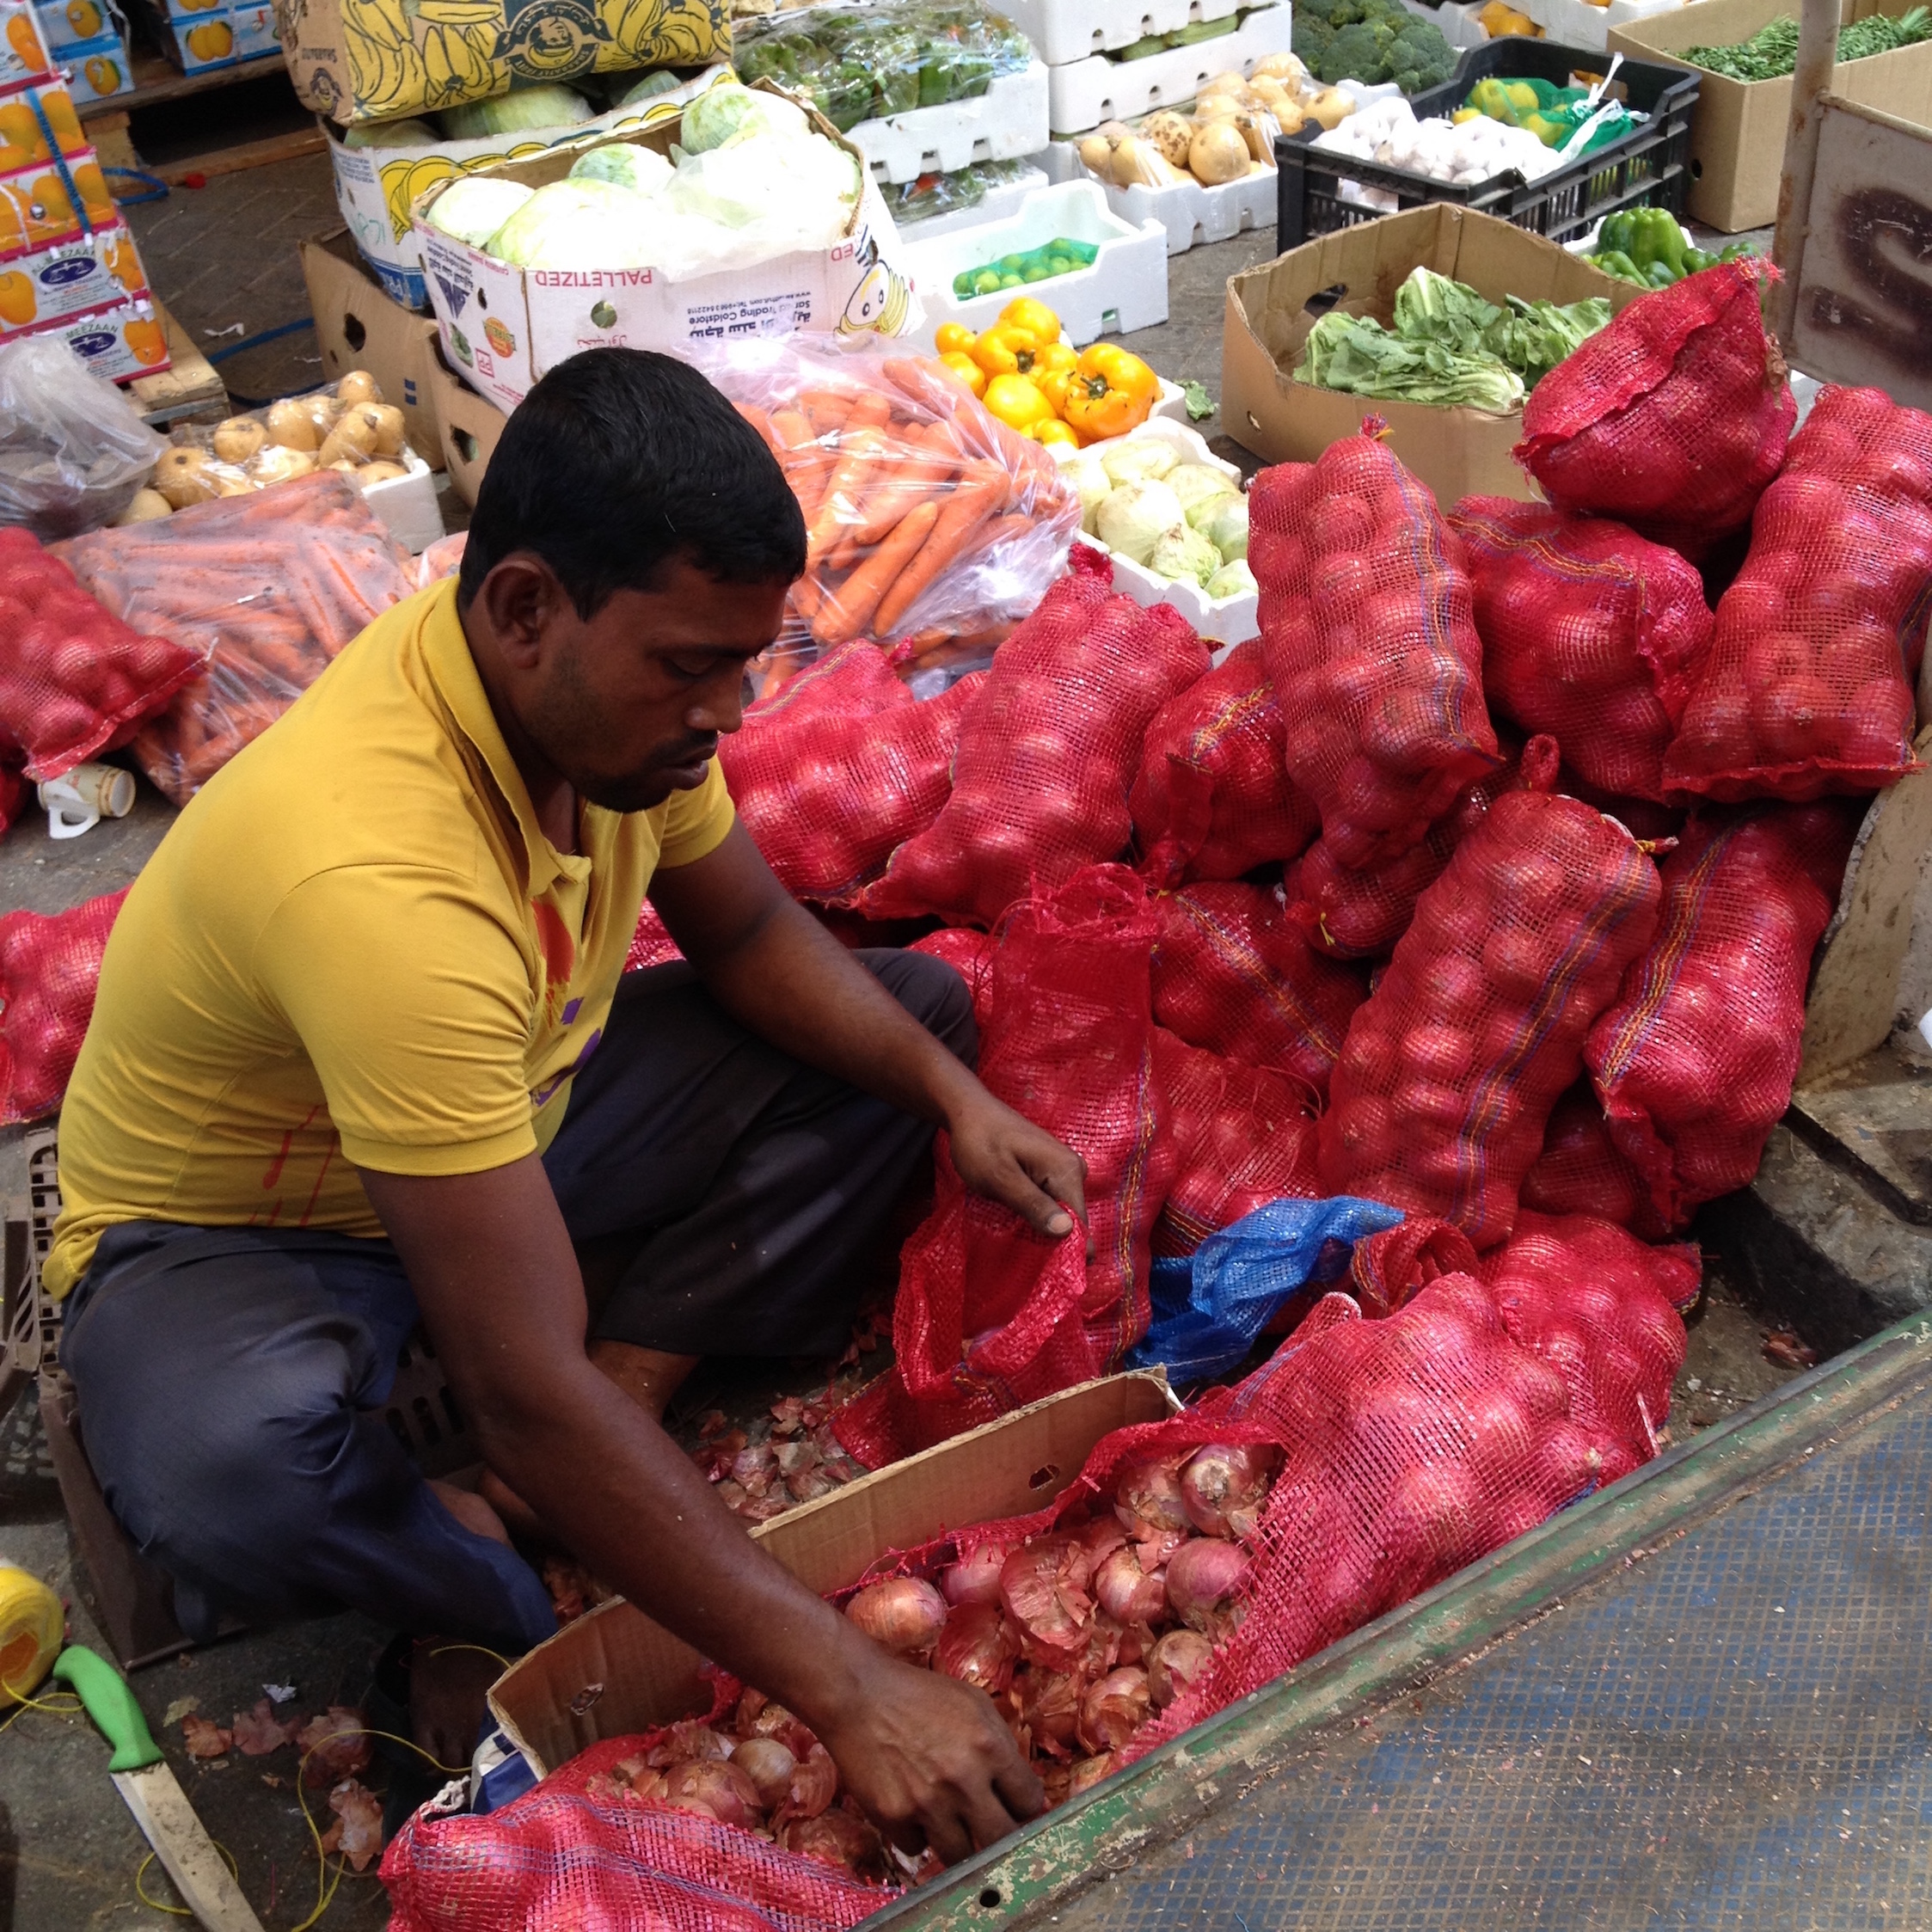 This vendor is cleaning sacks of onions to have them ready for sale.